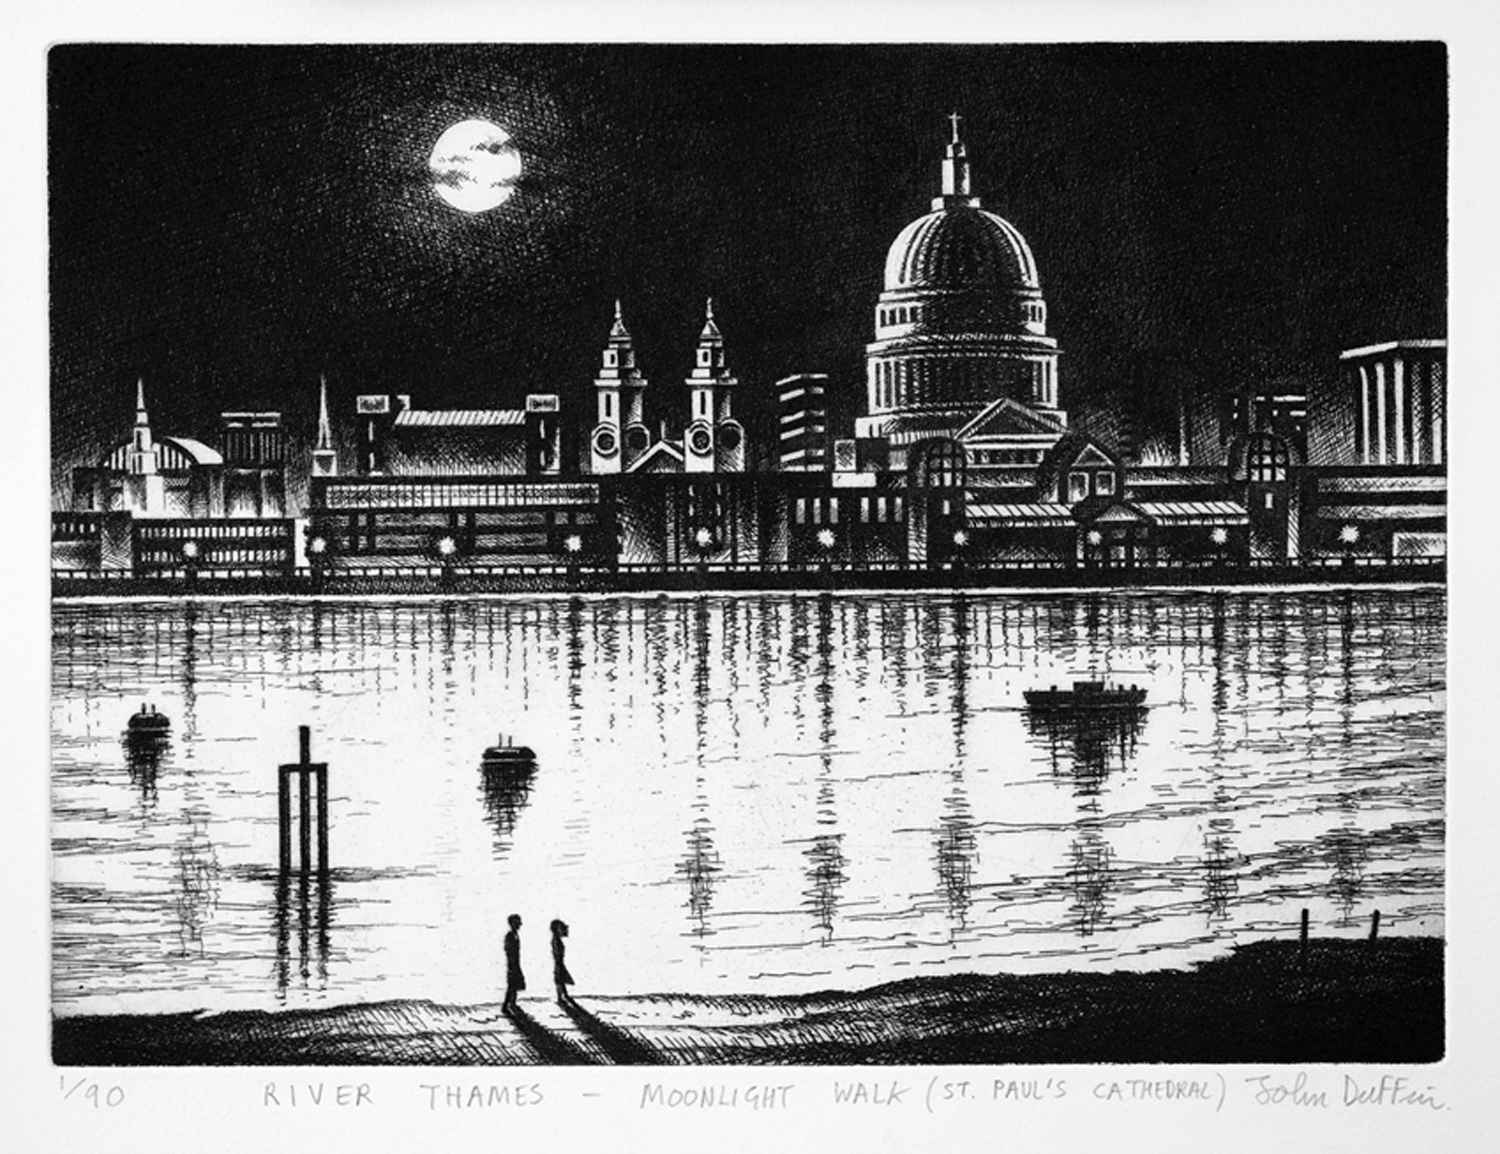 River Thames - Moonlight Walk (St Paul's Cathedral)   etching   21 x 30 cm  £195 (unframed)